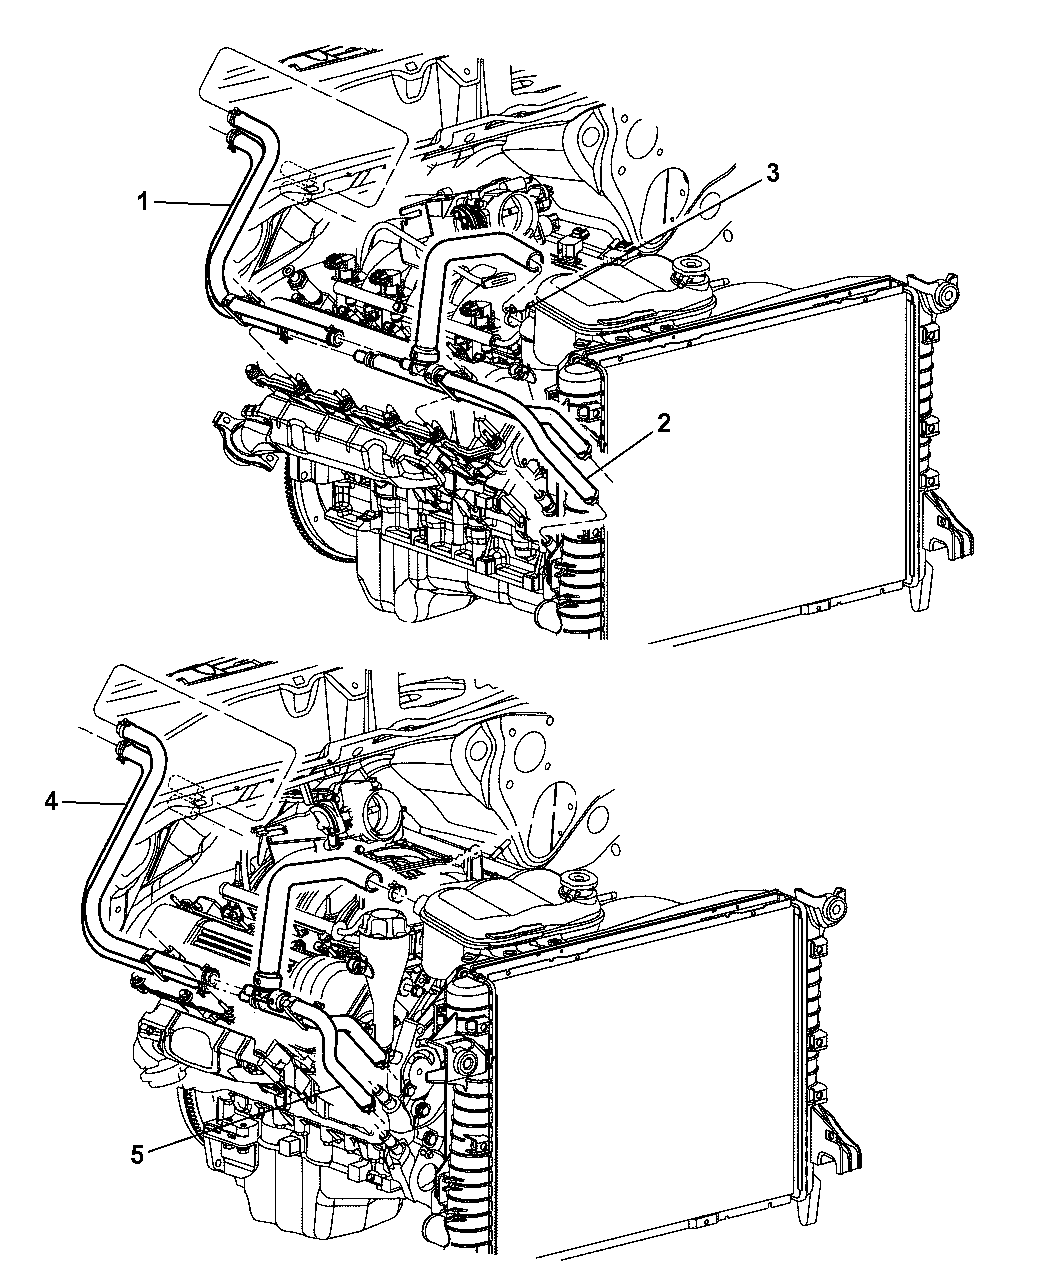 Download 1997 Dodge Ram 1500 Engine Diagram Images